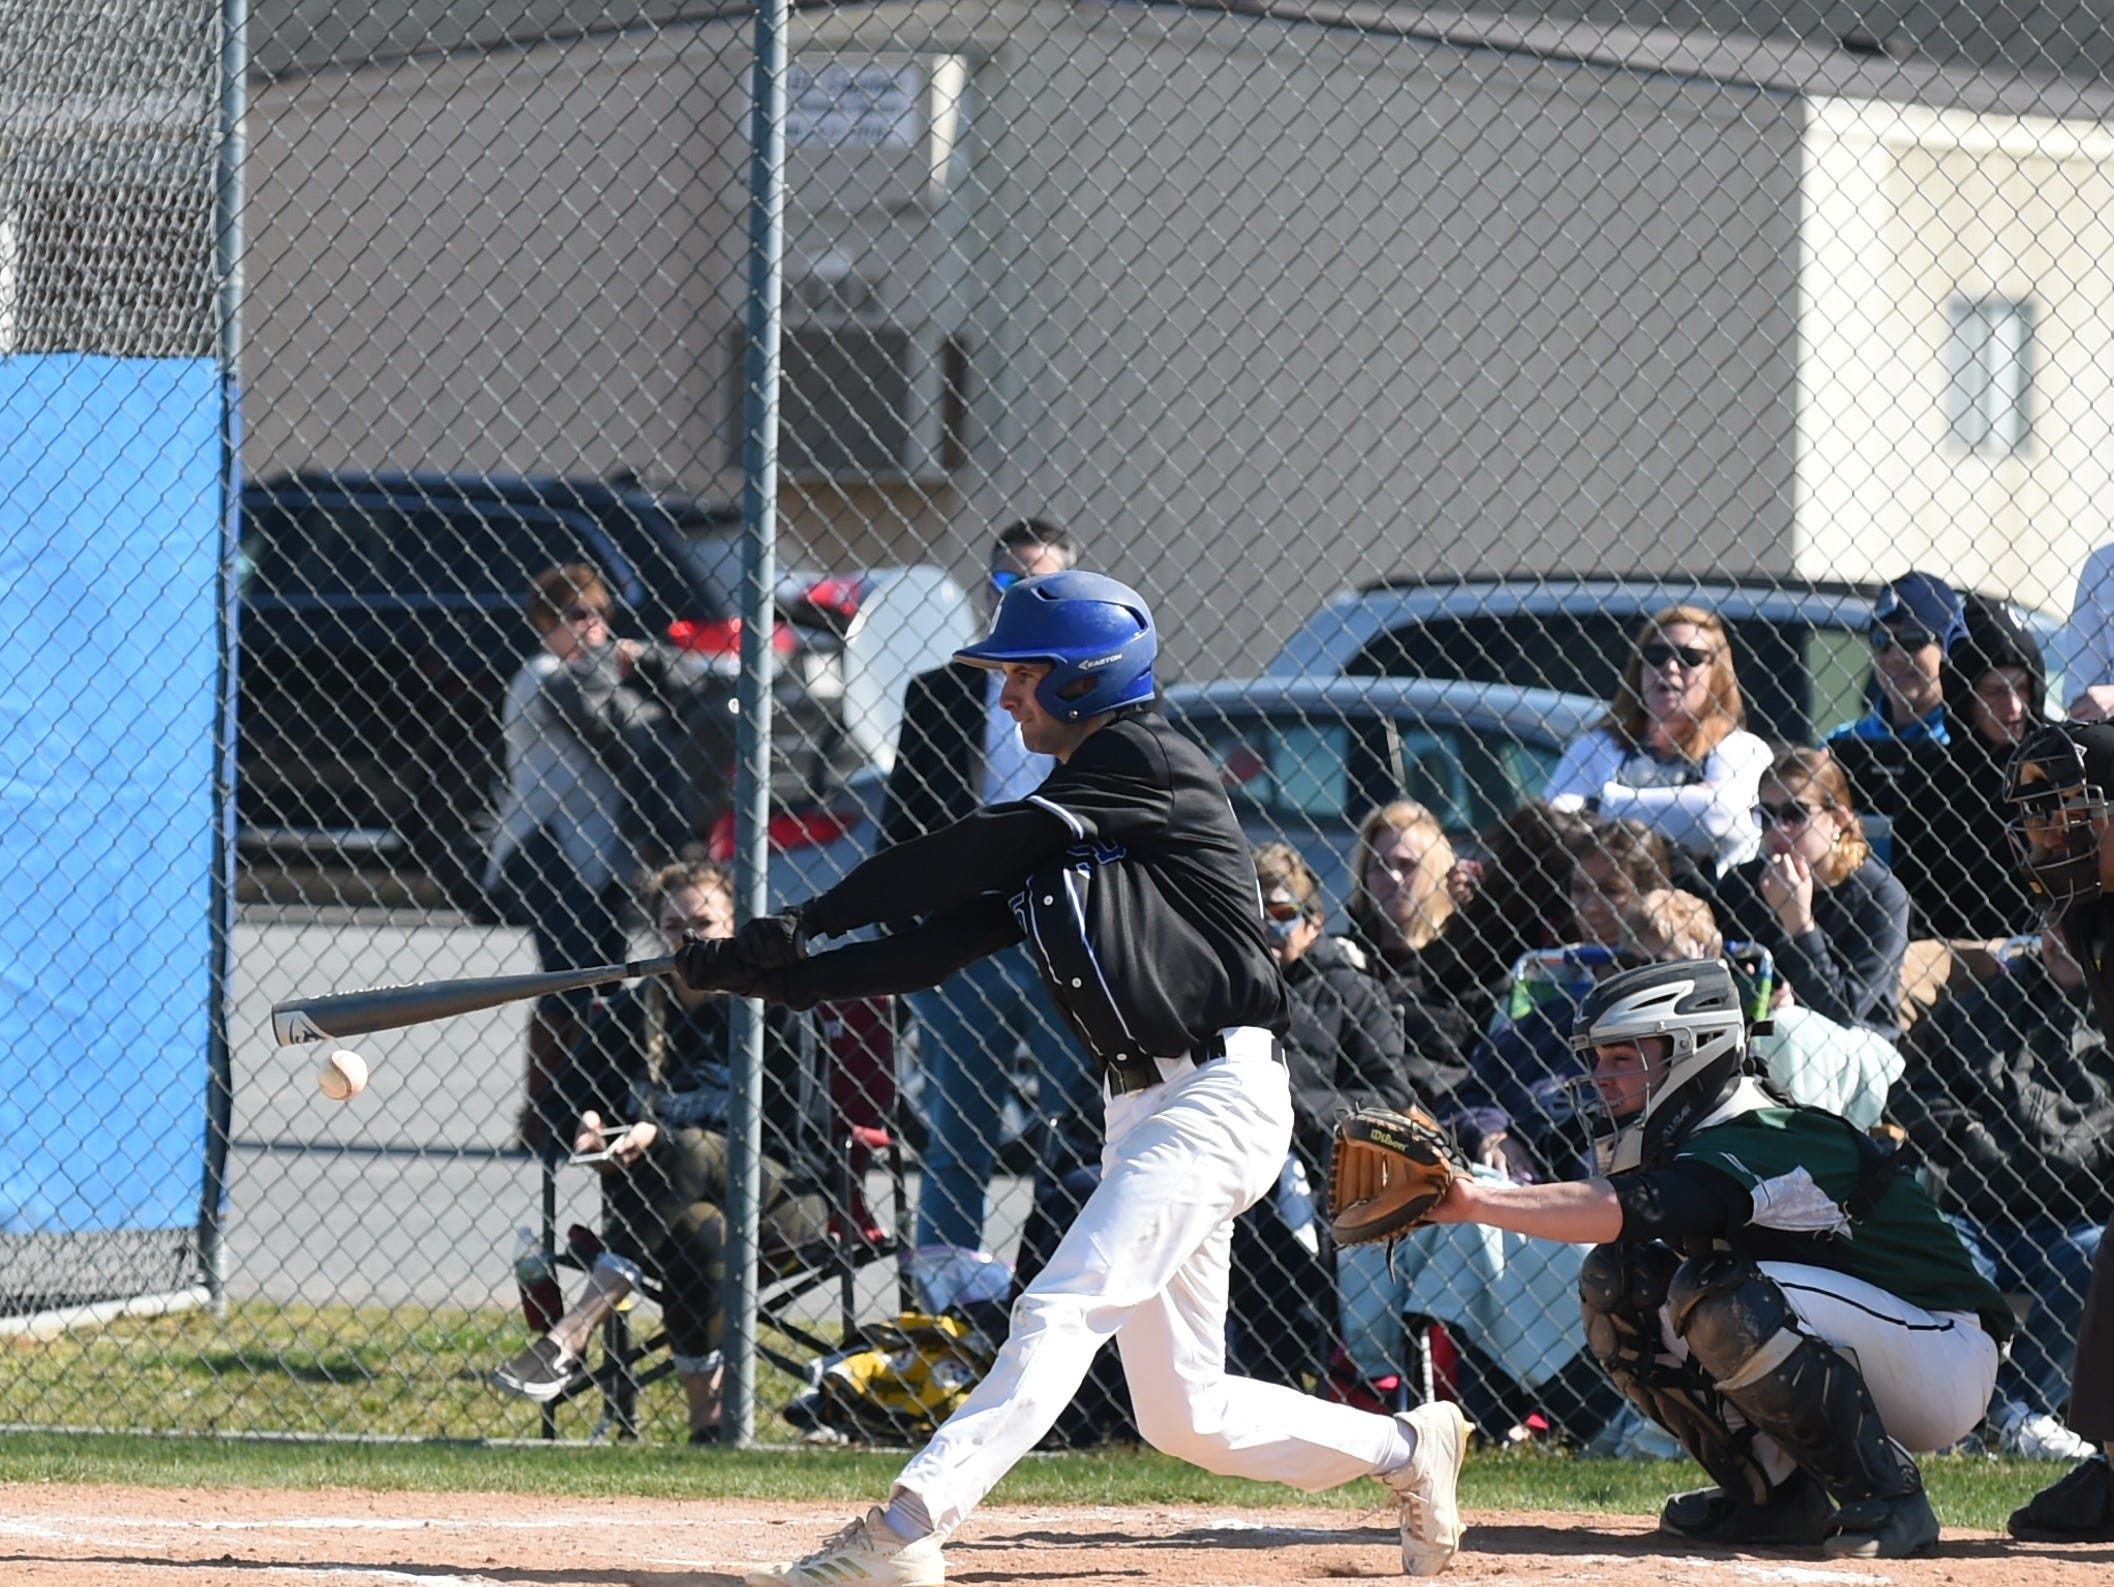 Stephen Decatur's Blake Marshall gets a hit against Parkside on Wednesday, April 3, 2019.